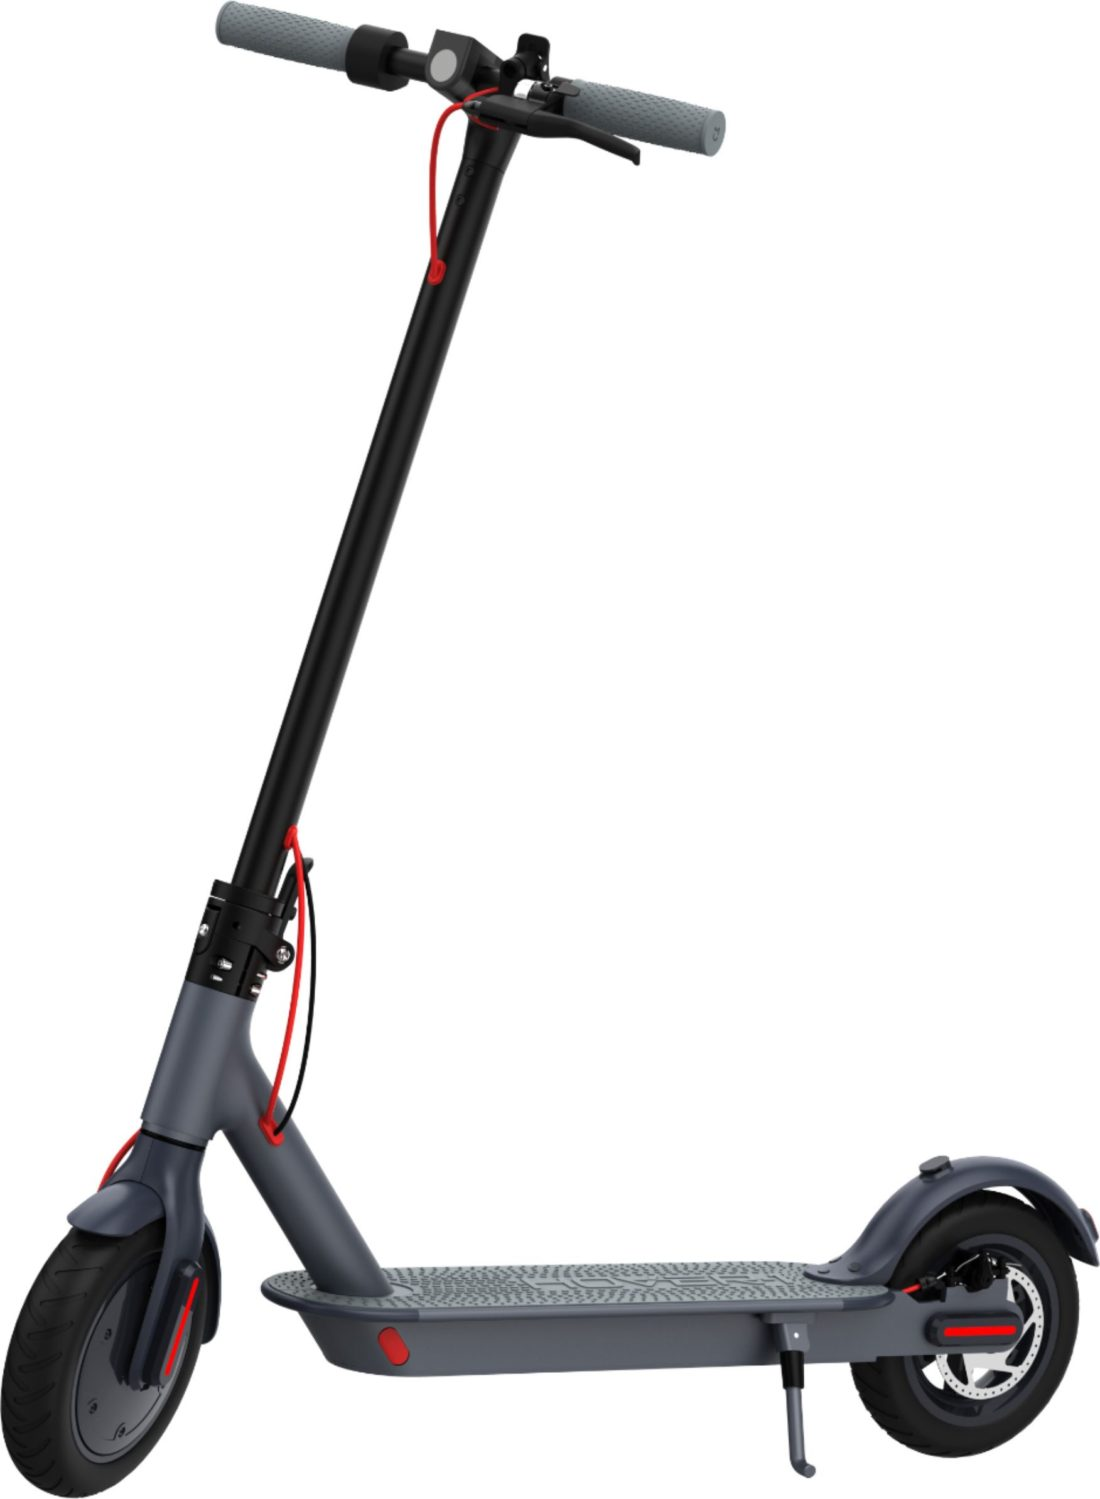 Hover-1 Electric Folding Scooter Sideview. Ride in style back to school with the Hover-1 Electric Folding Scooter